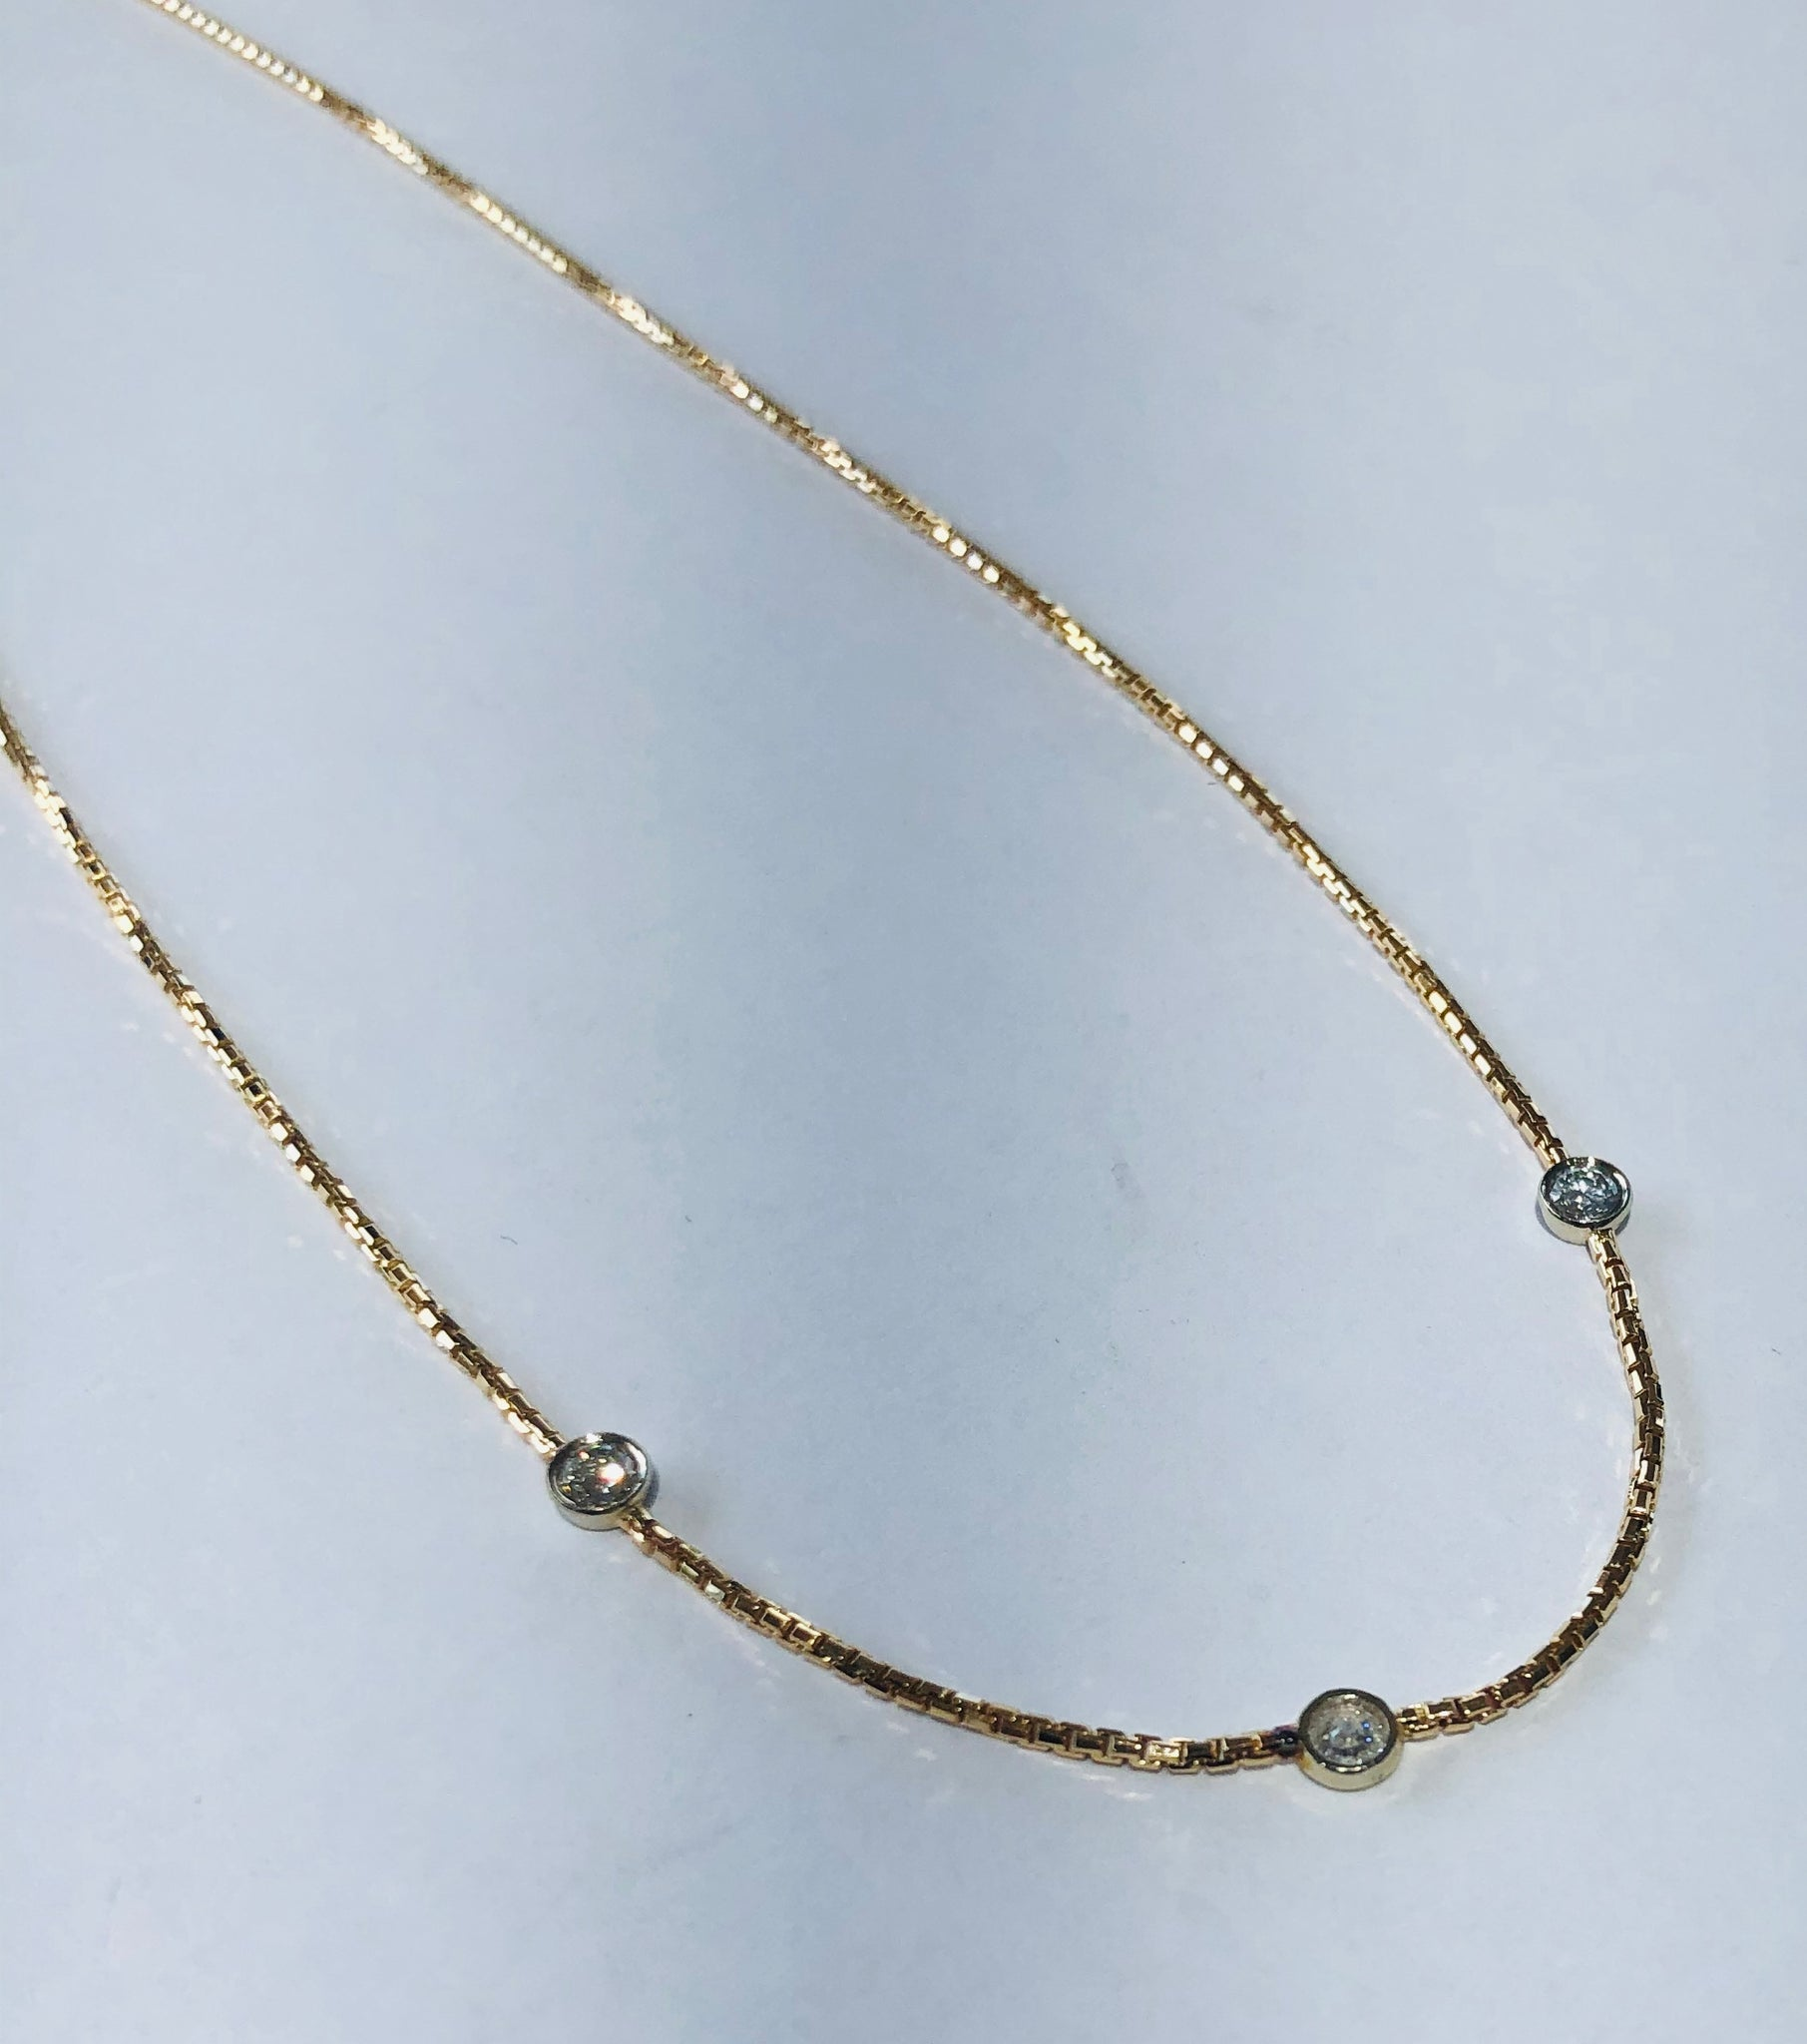 14 Kt. Yellow Gold Diamond by The Yard Fashion Necklace